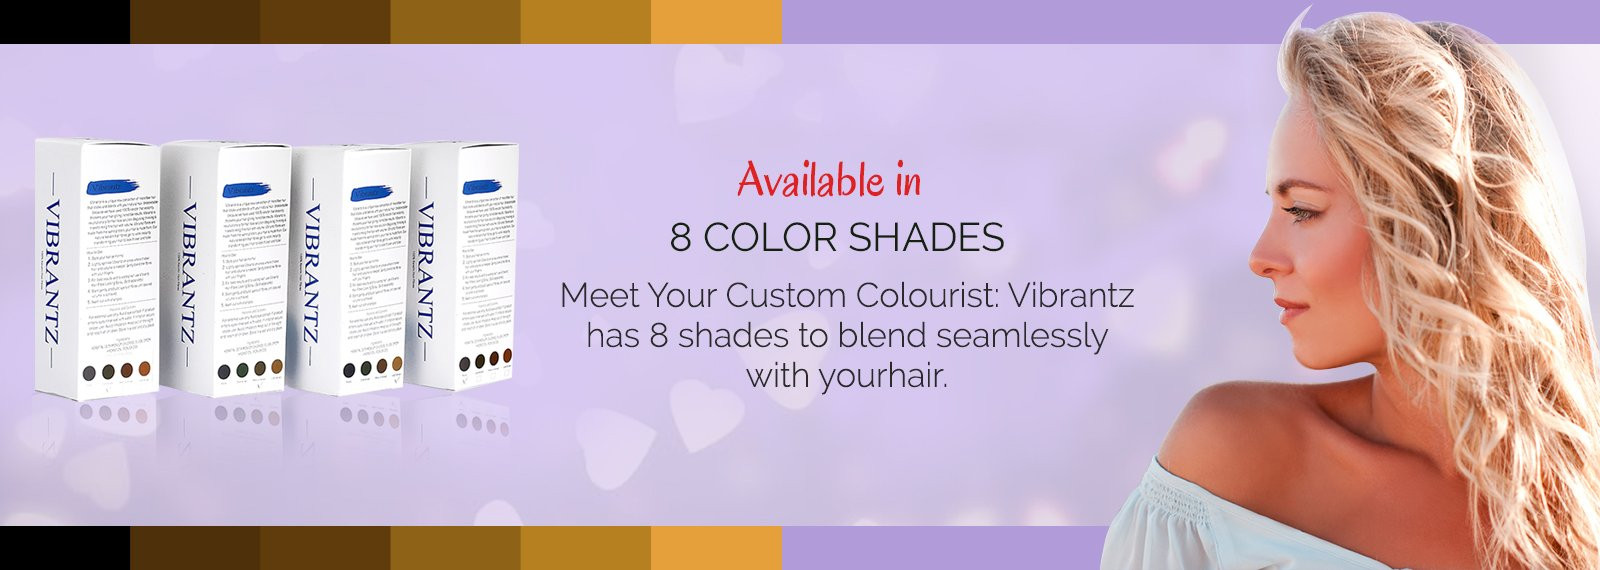 Vibrantzz color shades